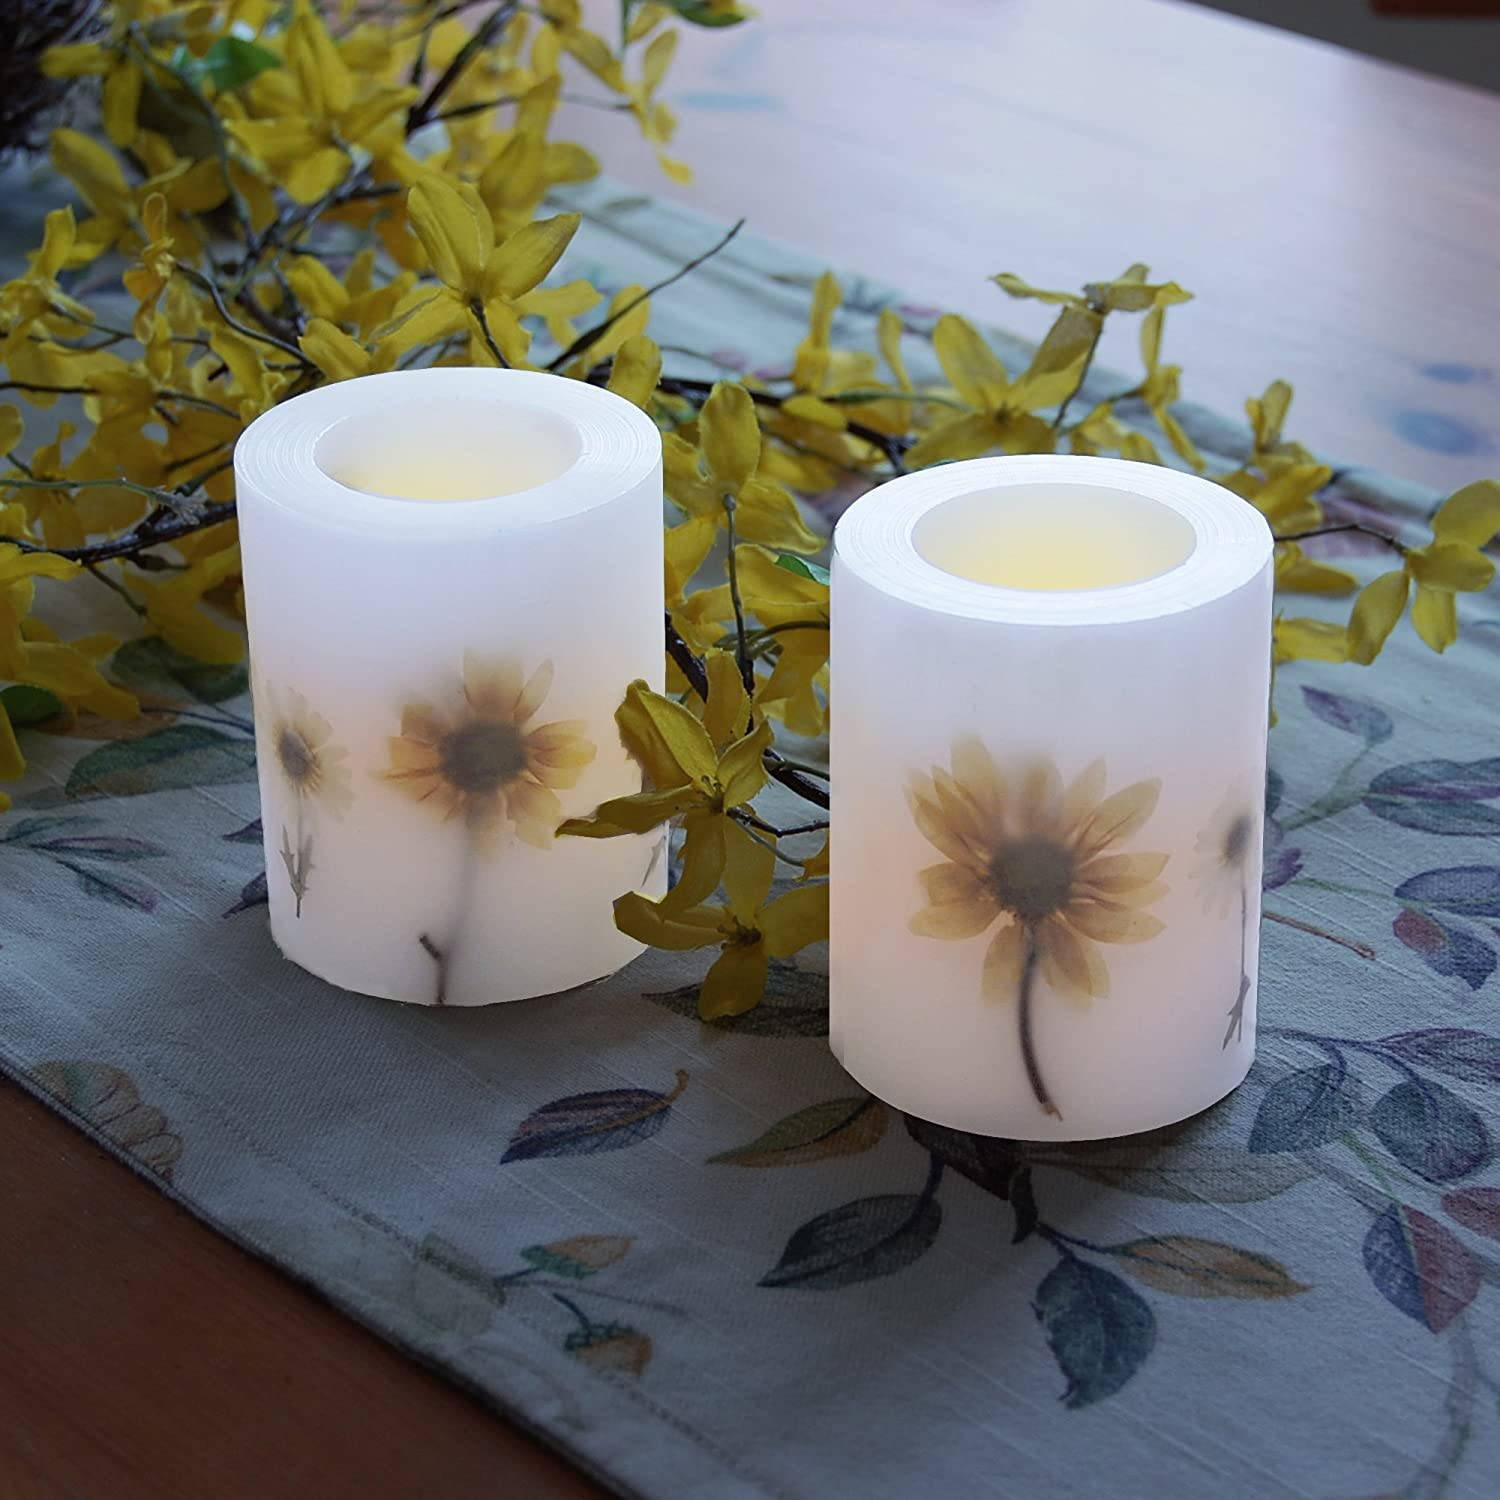 Lumabase 92202 2 Count Dried Flowers Battery Operated LED Candles